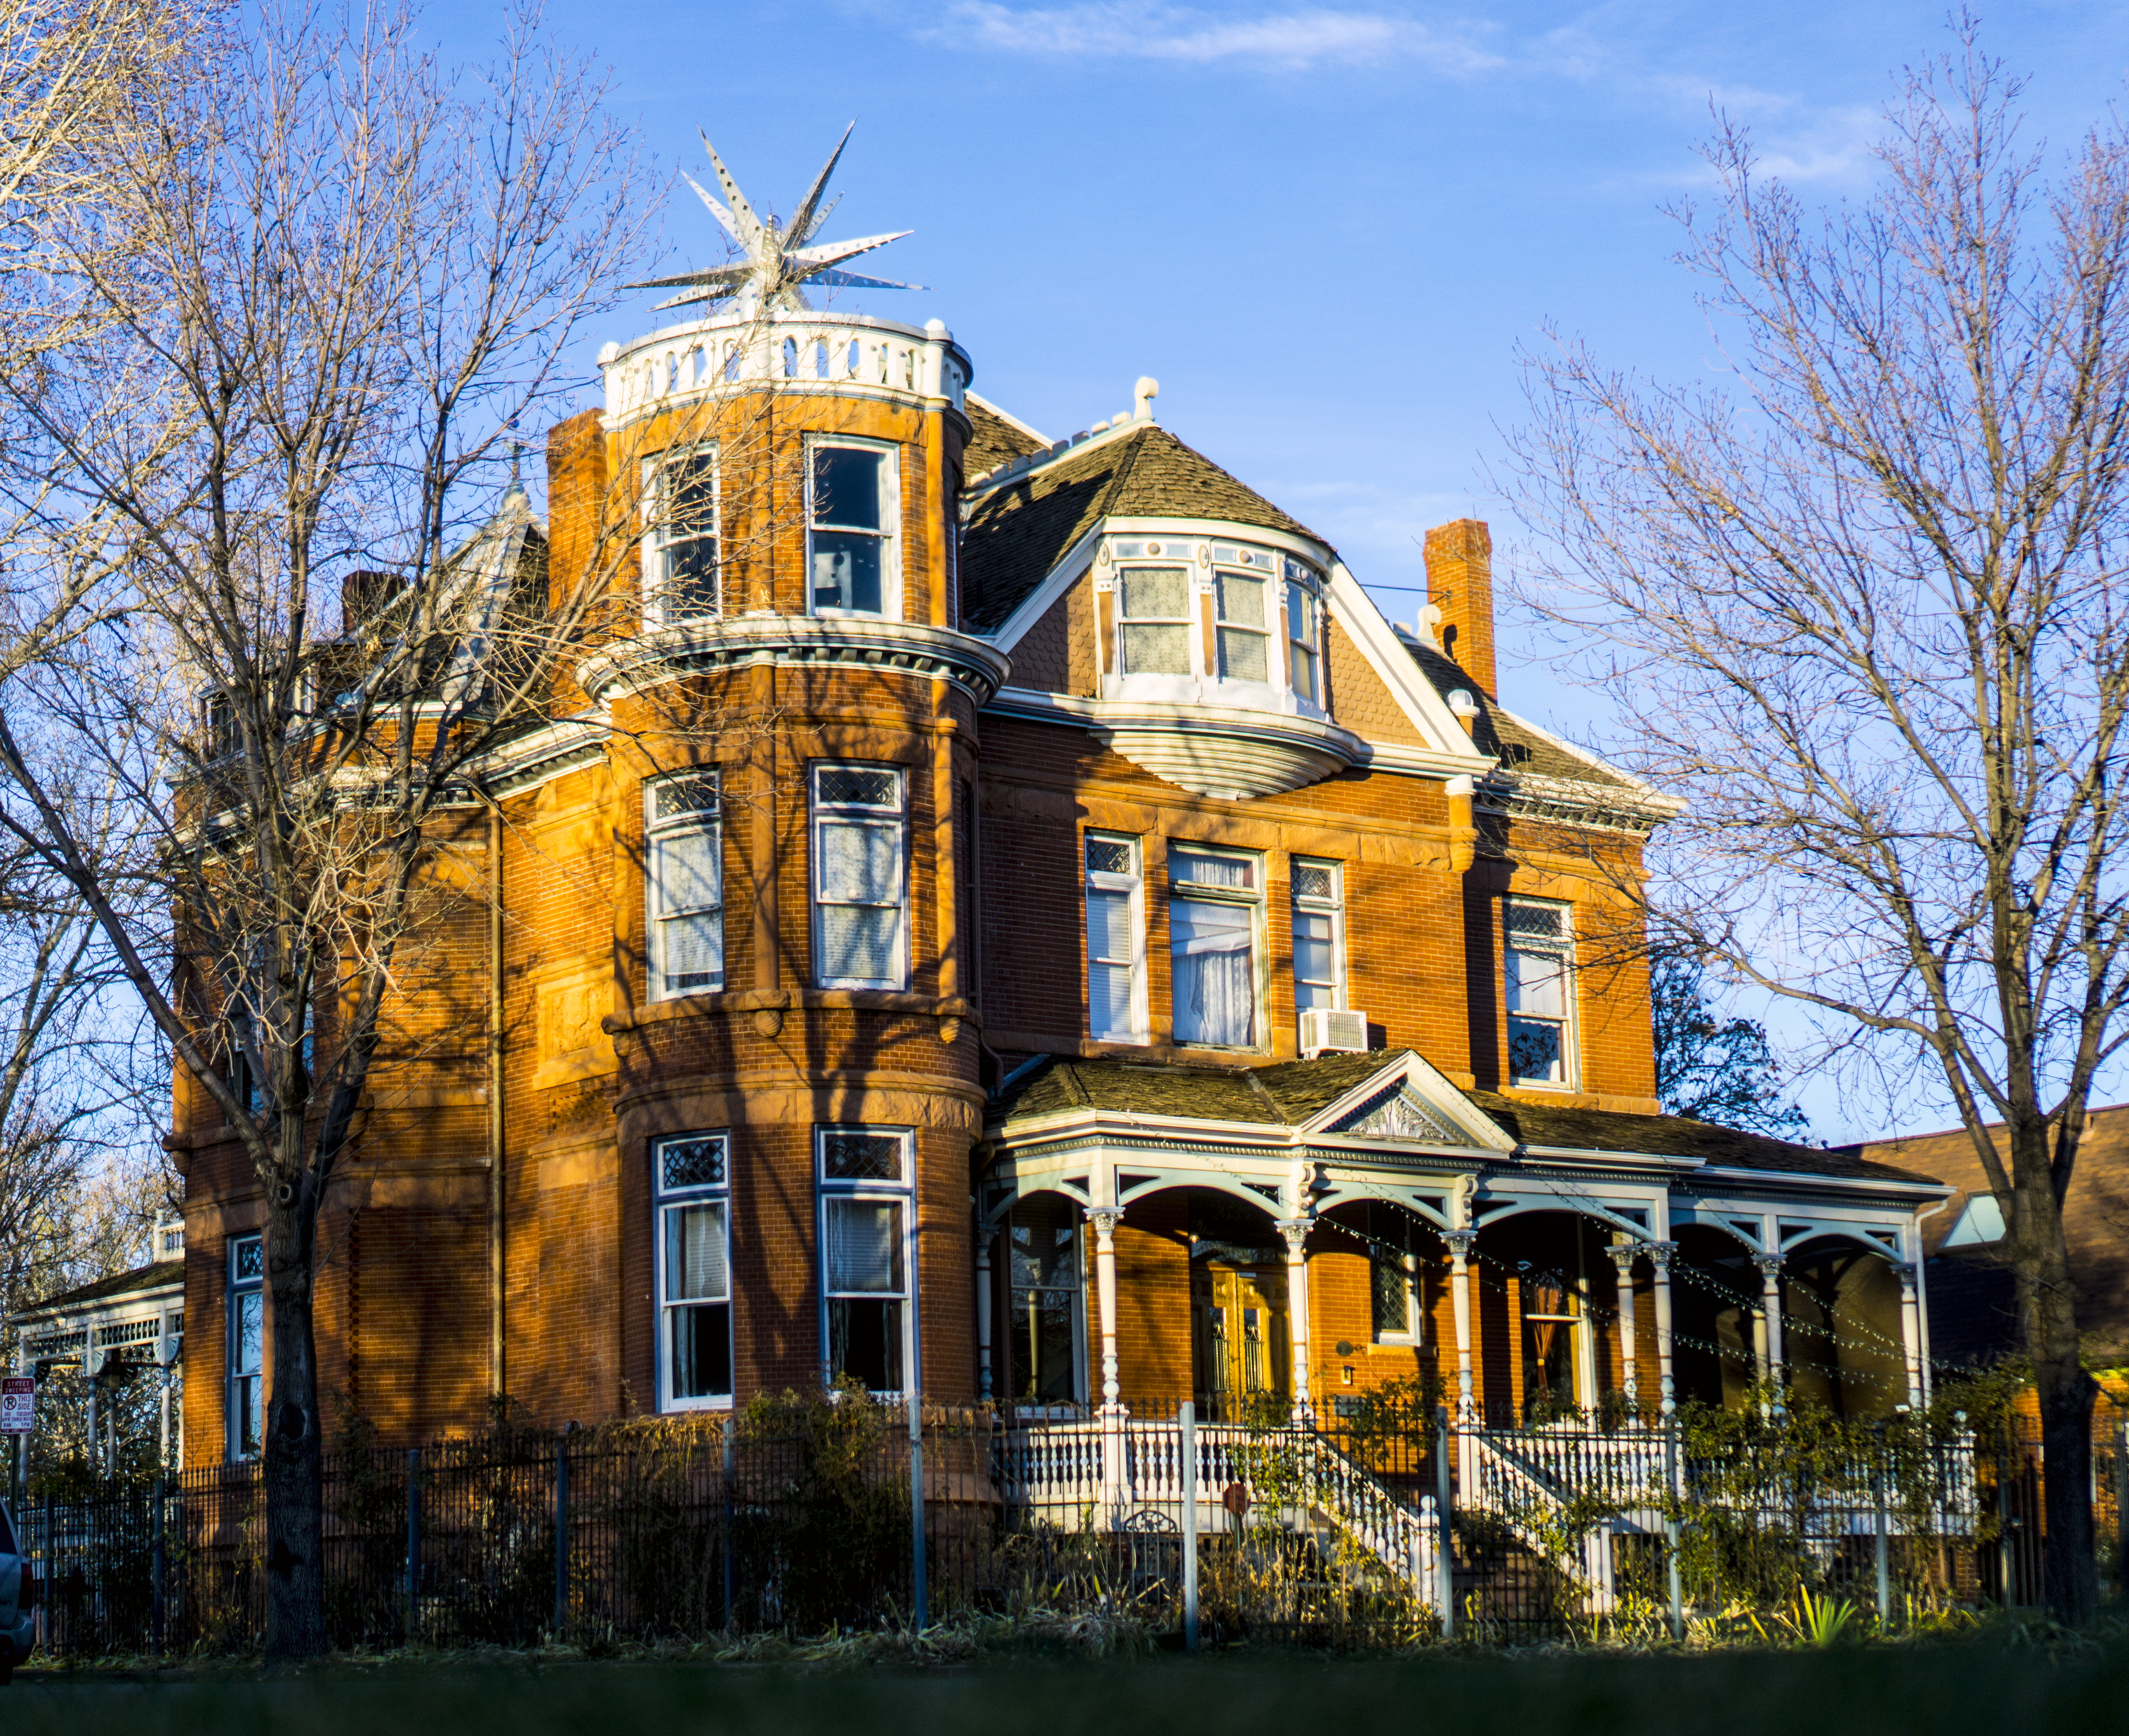 The Lumber Baron Inn